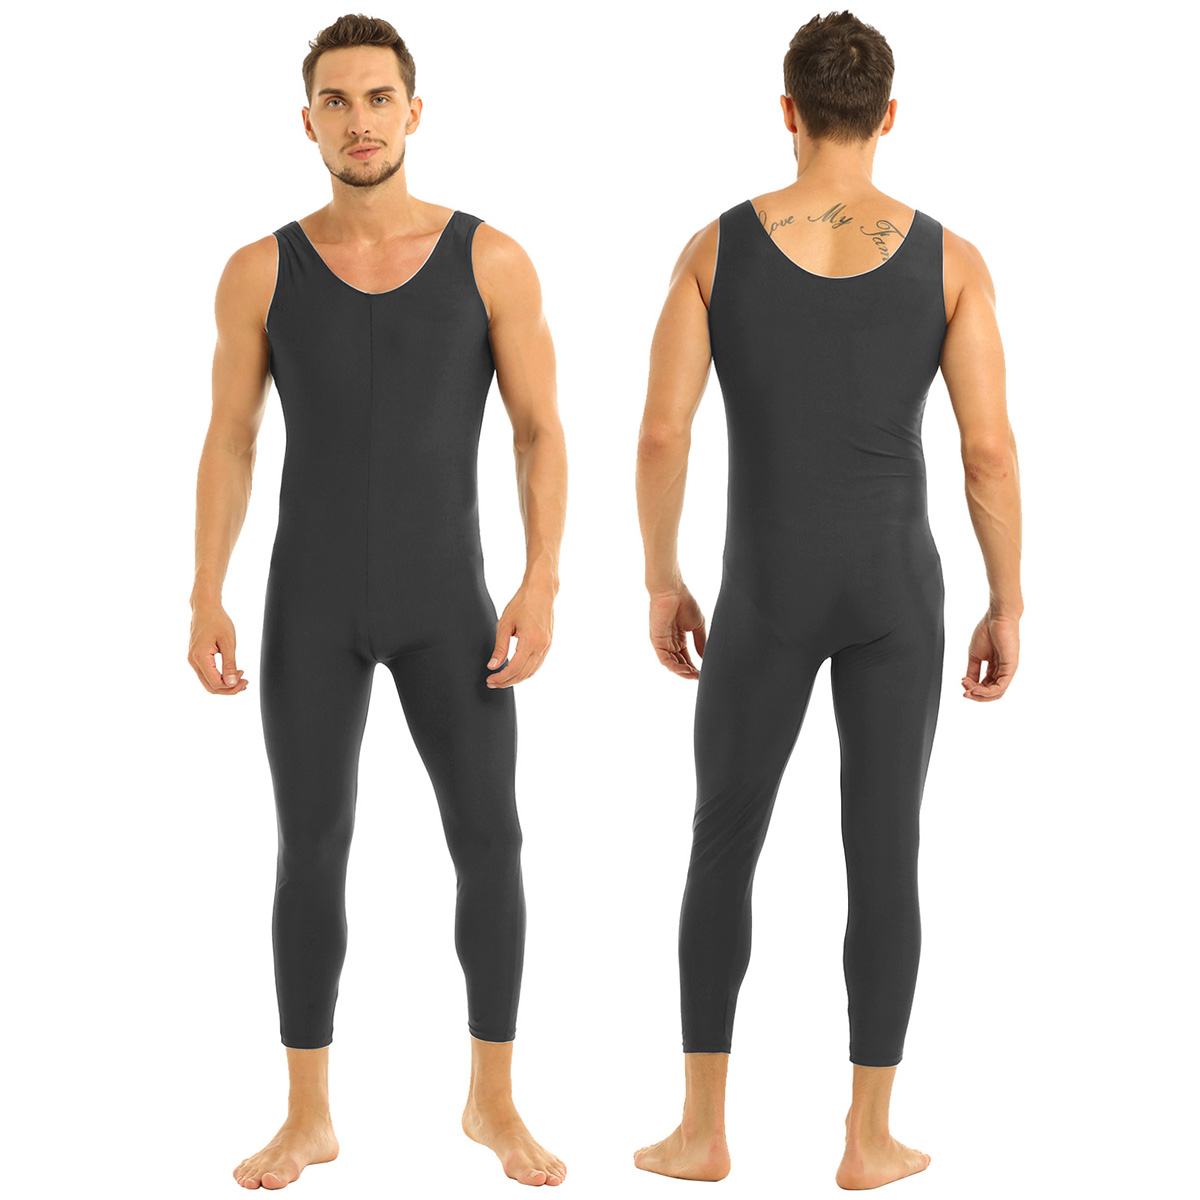 Men Sleeveless Leotard Bodysuit Lycra Tights Leggings for Ballet Dance Vest Teddy Sports Unitard Catsuit Male Dancewear Jumpsuit 14